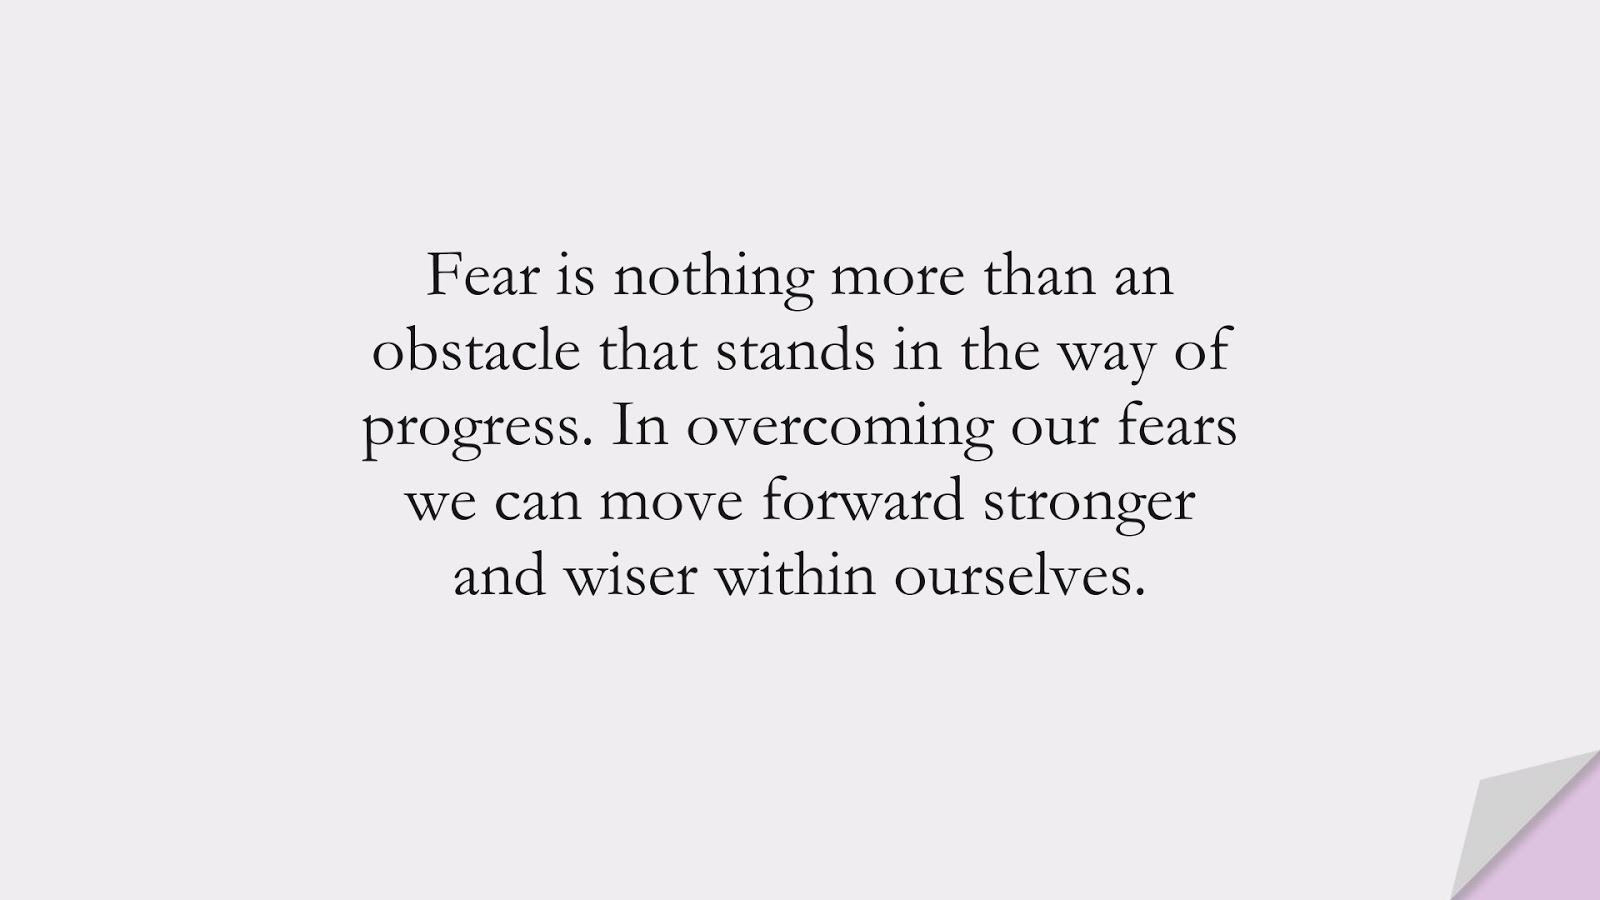 Fear is nothing more than an obstacle that stands in the way of progress. In overcoming our fears we can move forward stronger and wiser within ourselves.FALSE